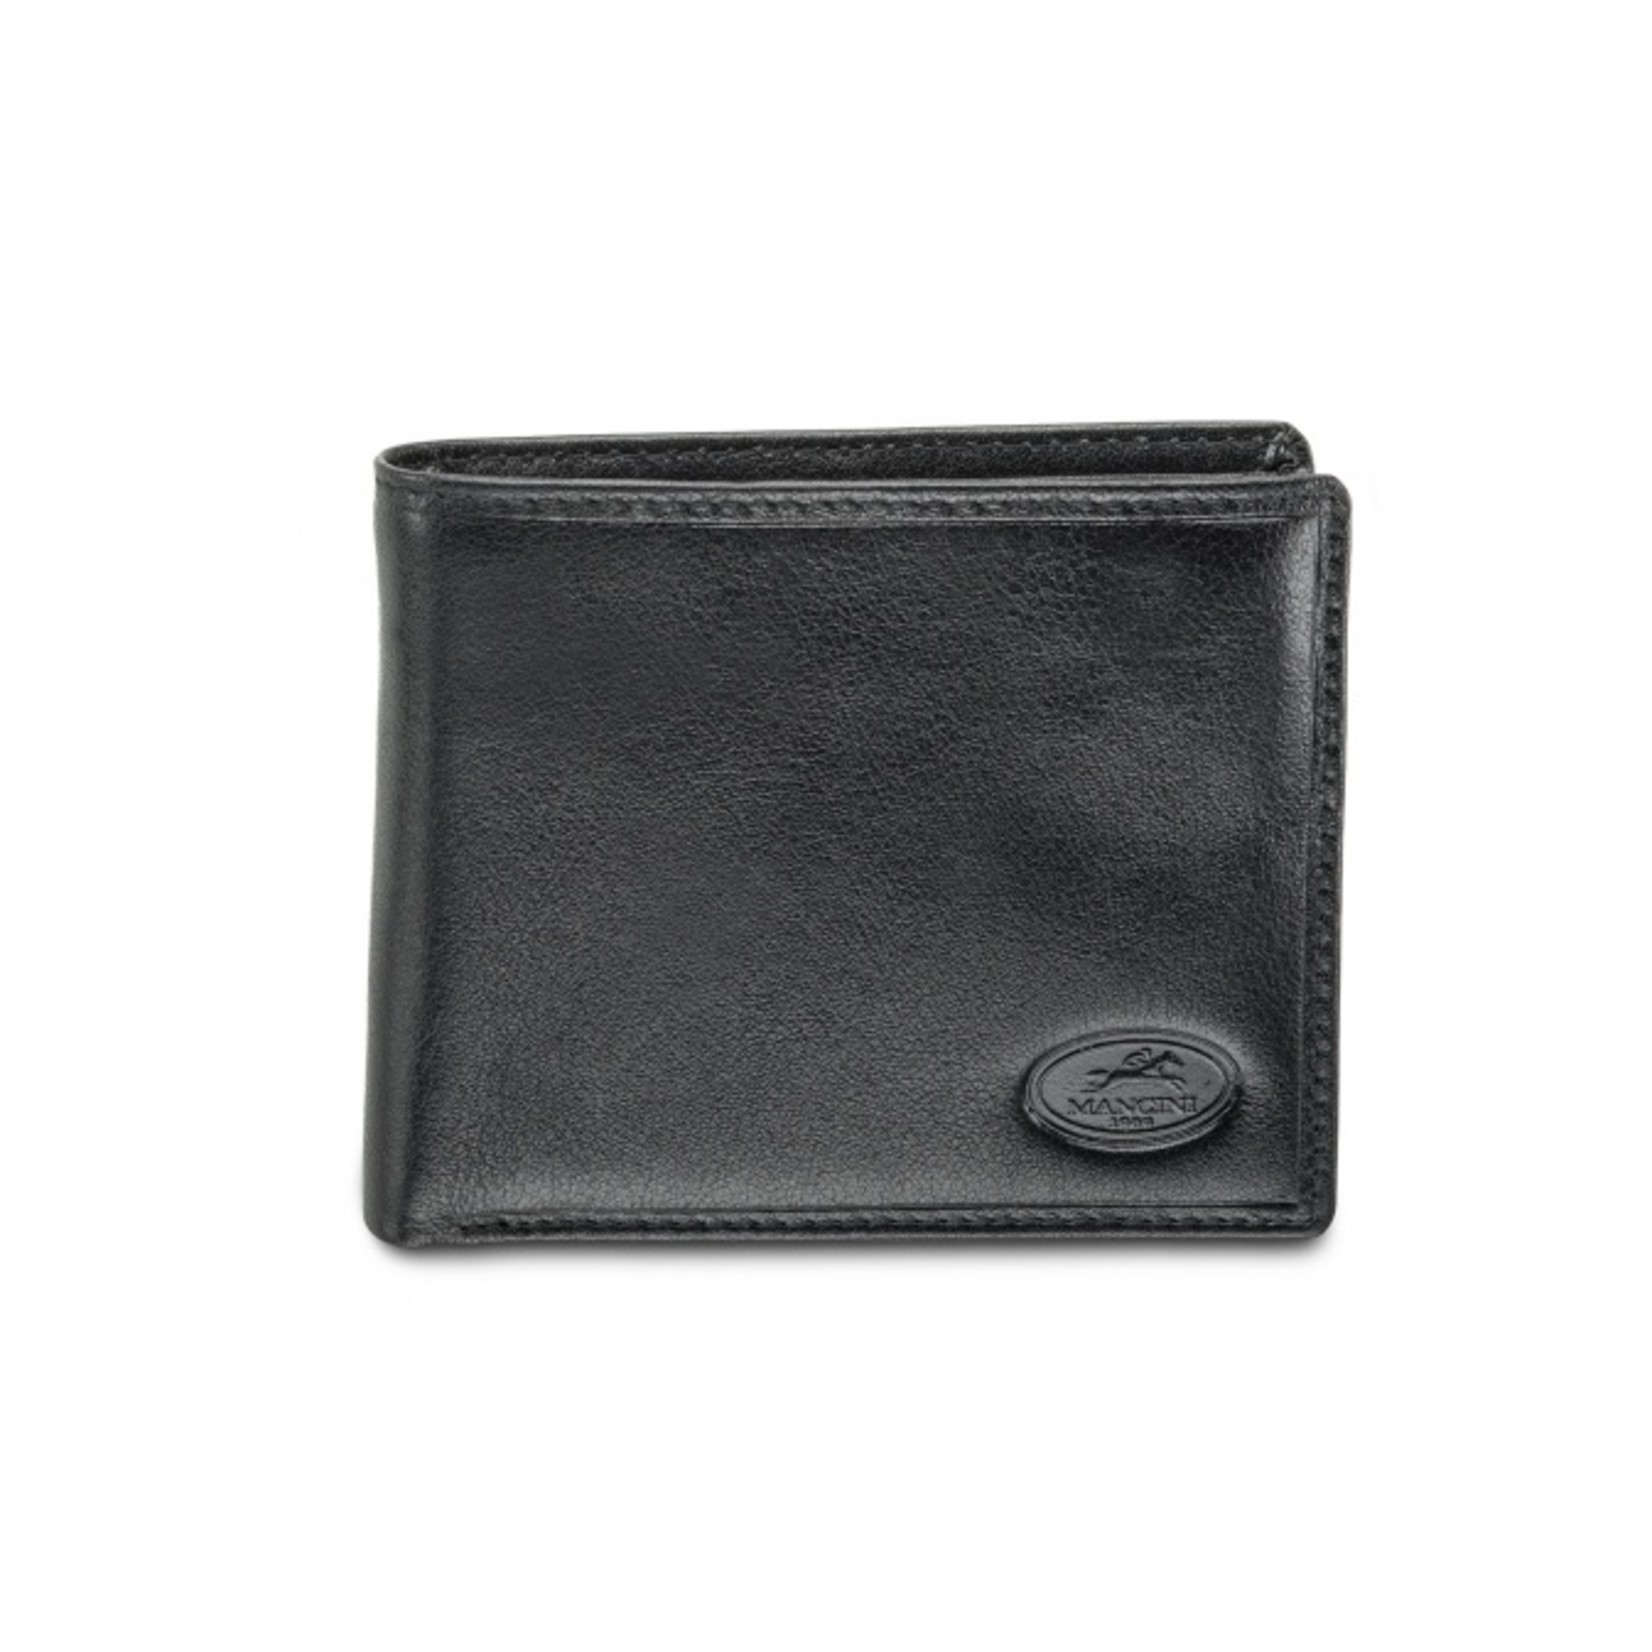 Mancini Mancini 52183 Billfold w/coin purse & centre flap